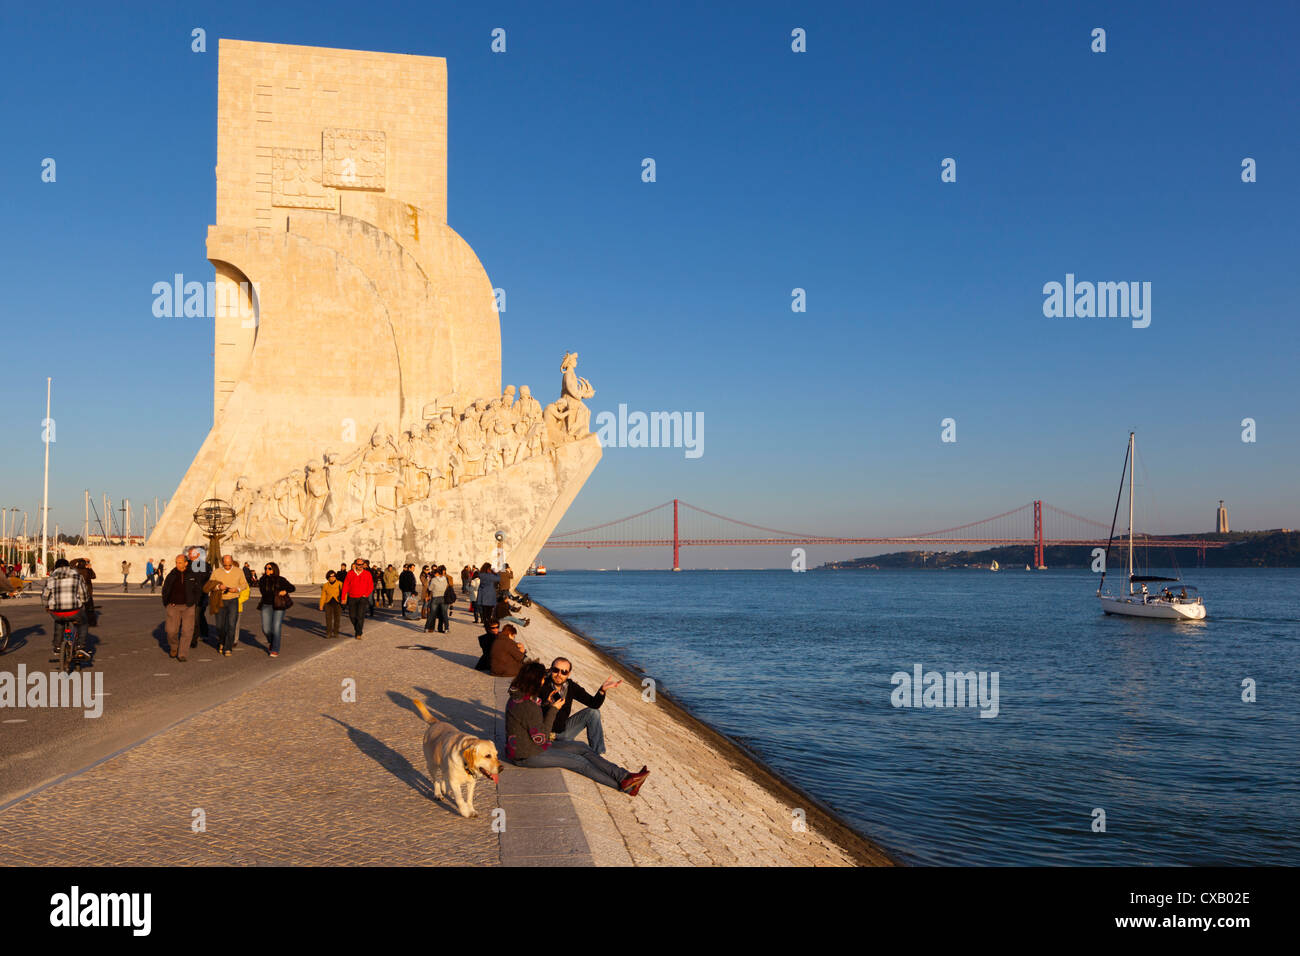 Monument to the Discoveries beside the Tagus River, Belem, Lisbon, Portugal, Europe - Stock Image